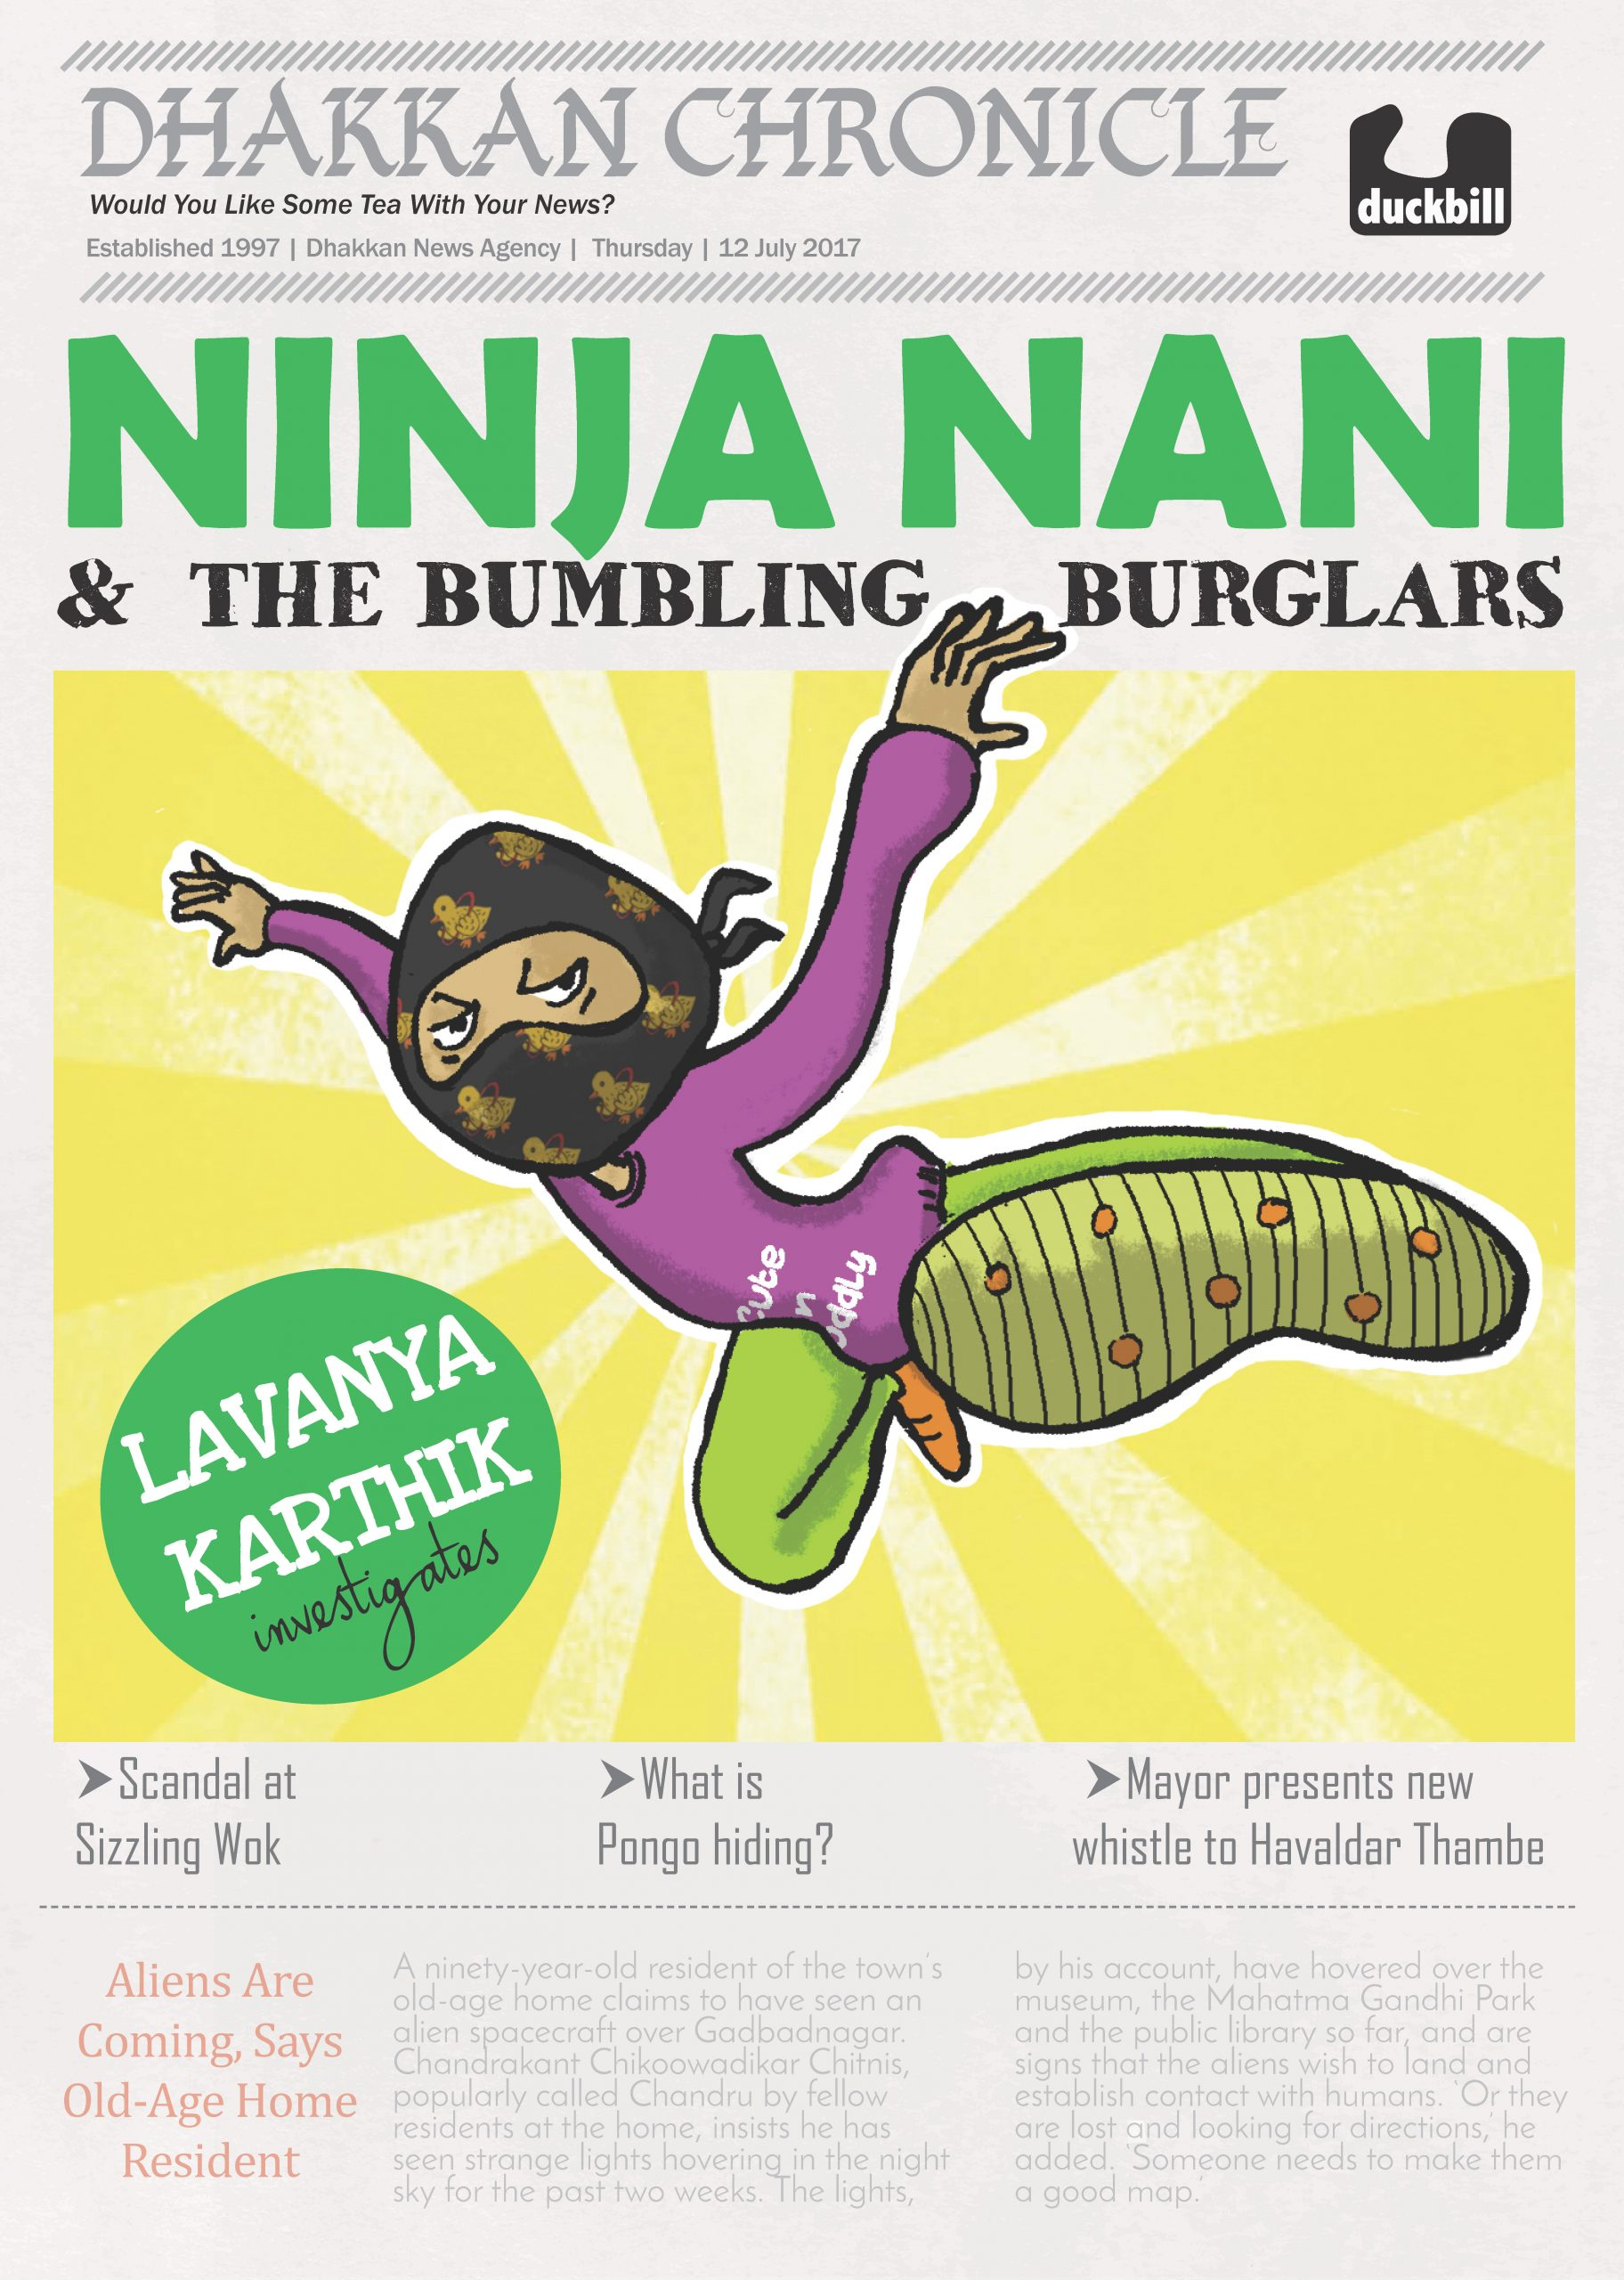 Ninja Nani and the Bumbling Burglars